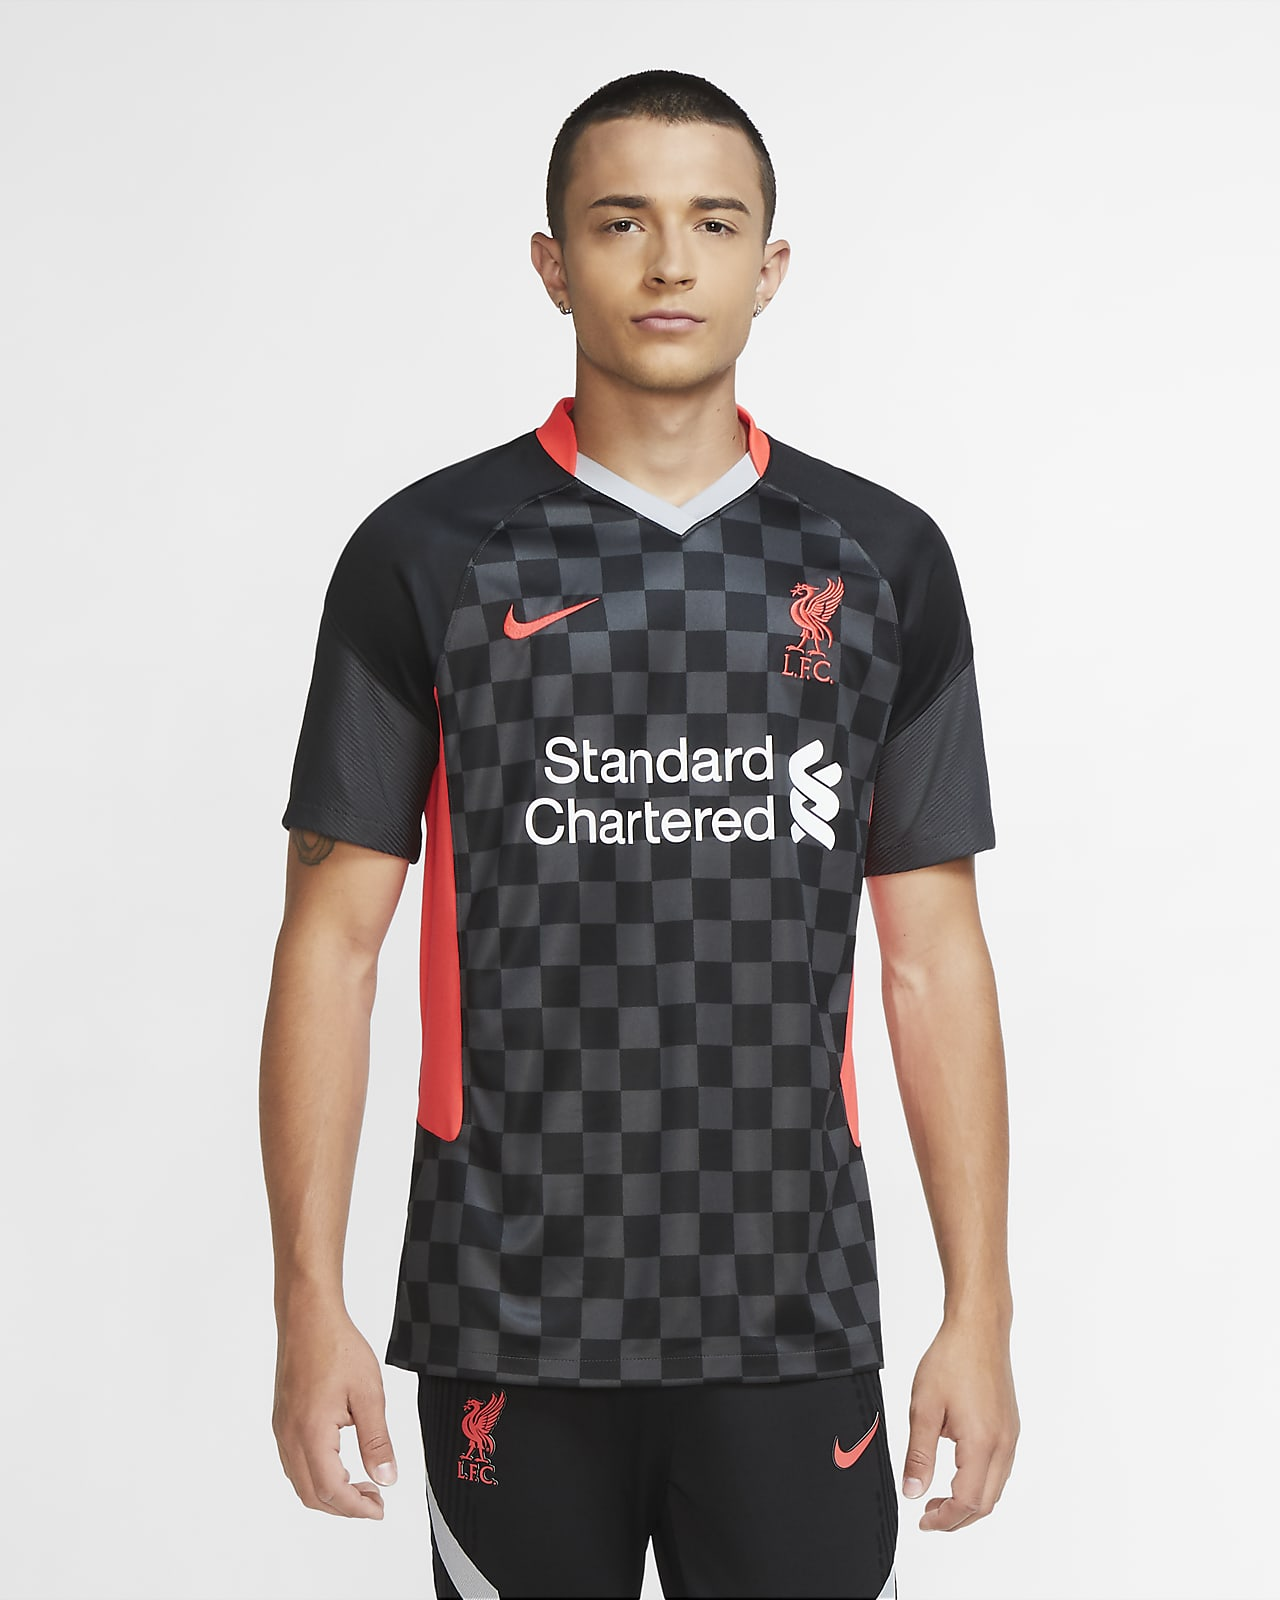 liverpool fc 2020 21 stadium third men s soccer jersey nike com liverpool fc 2020 21 stadium third men s soccer jersey